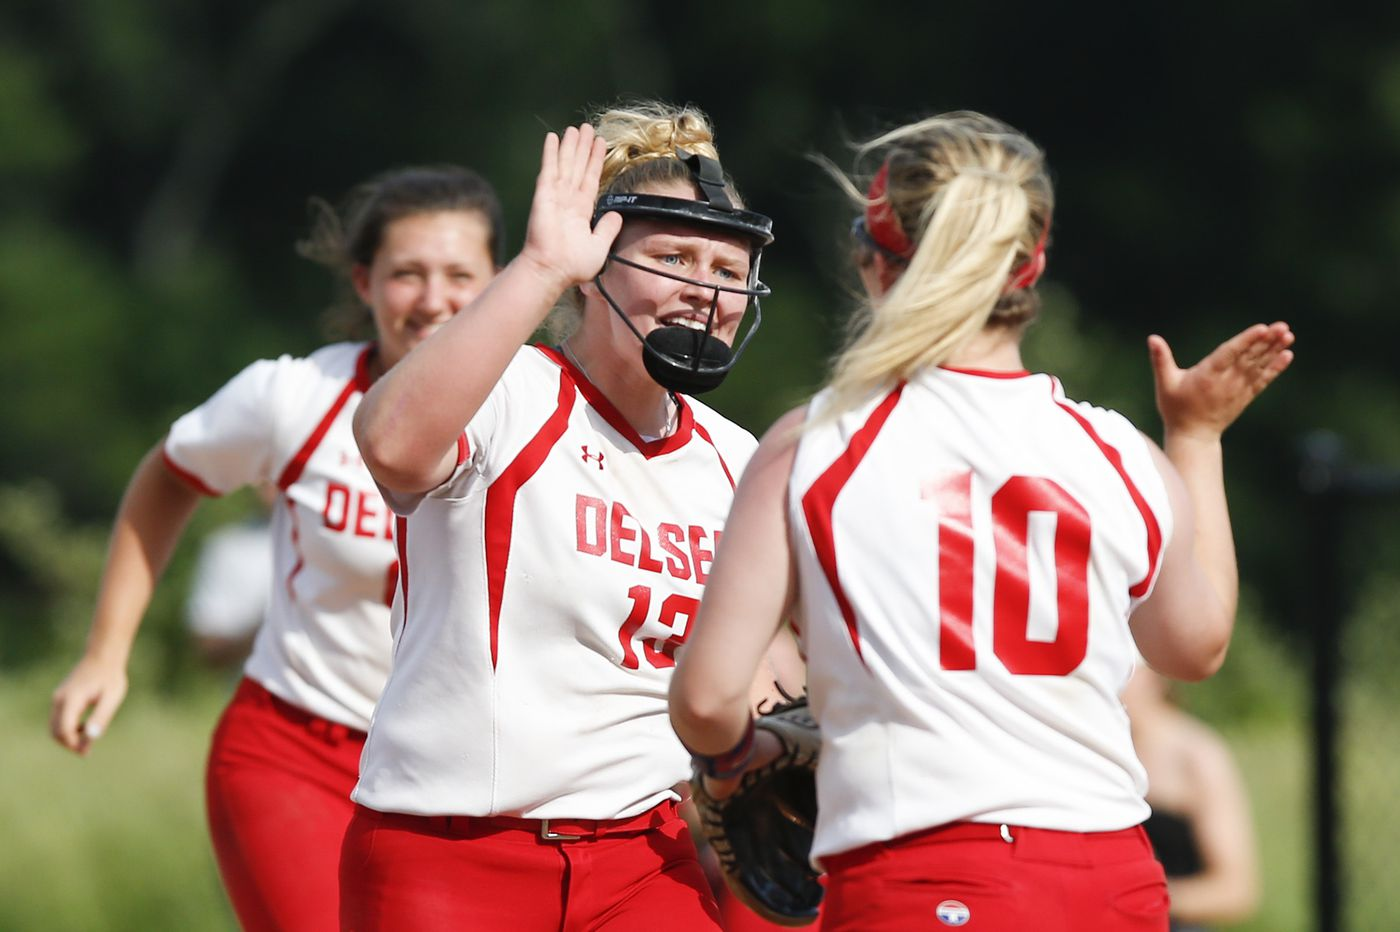 Monday's South Jersey Roundup: Delsea beats Seneca in 10 innings, advances to South Group 3 softball semifinals